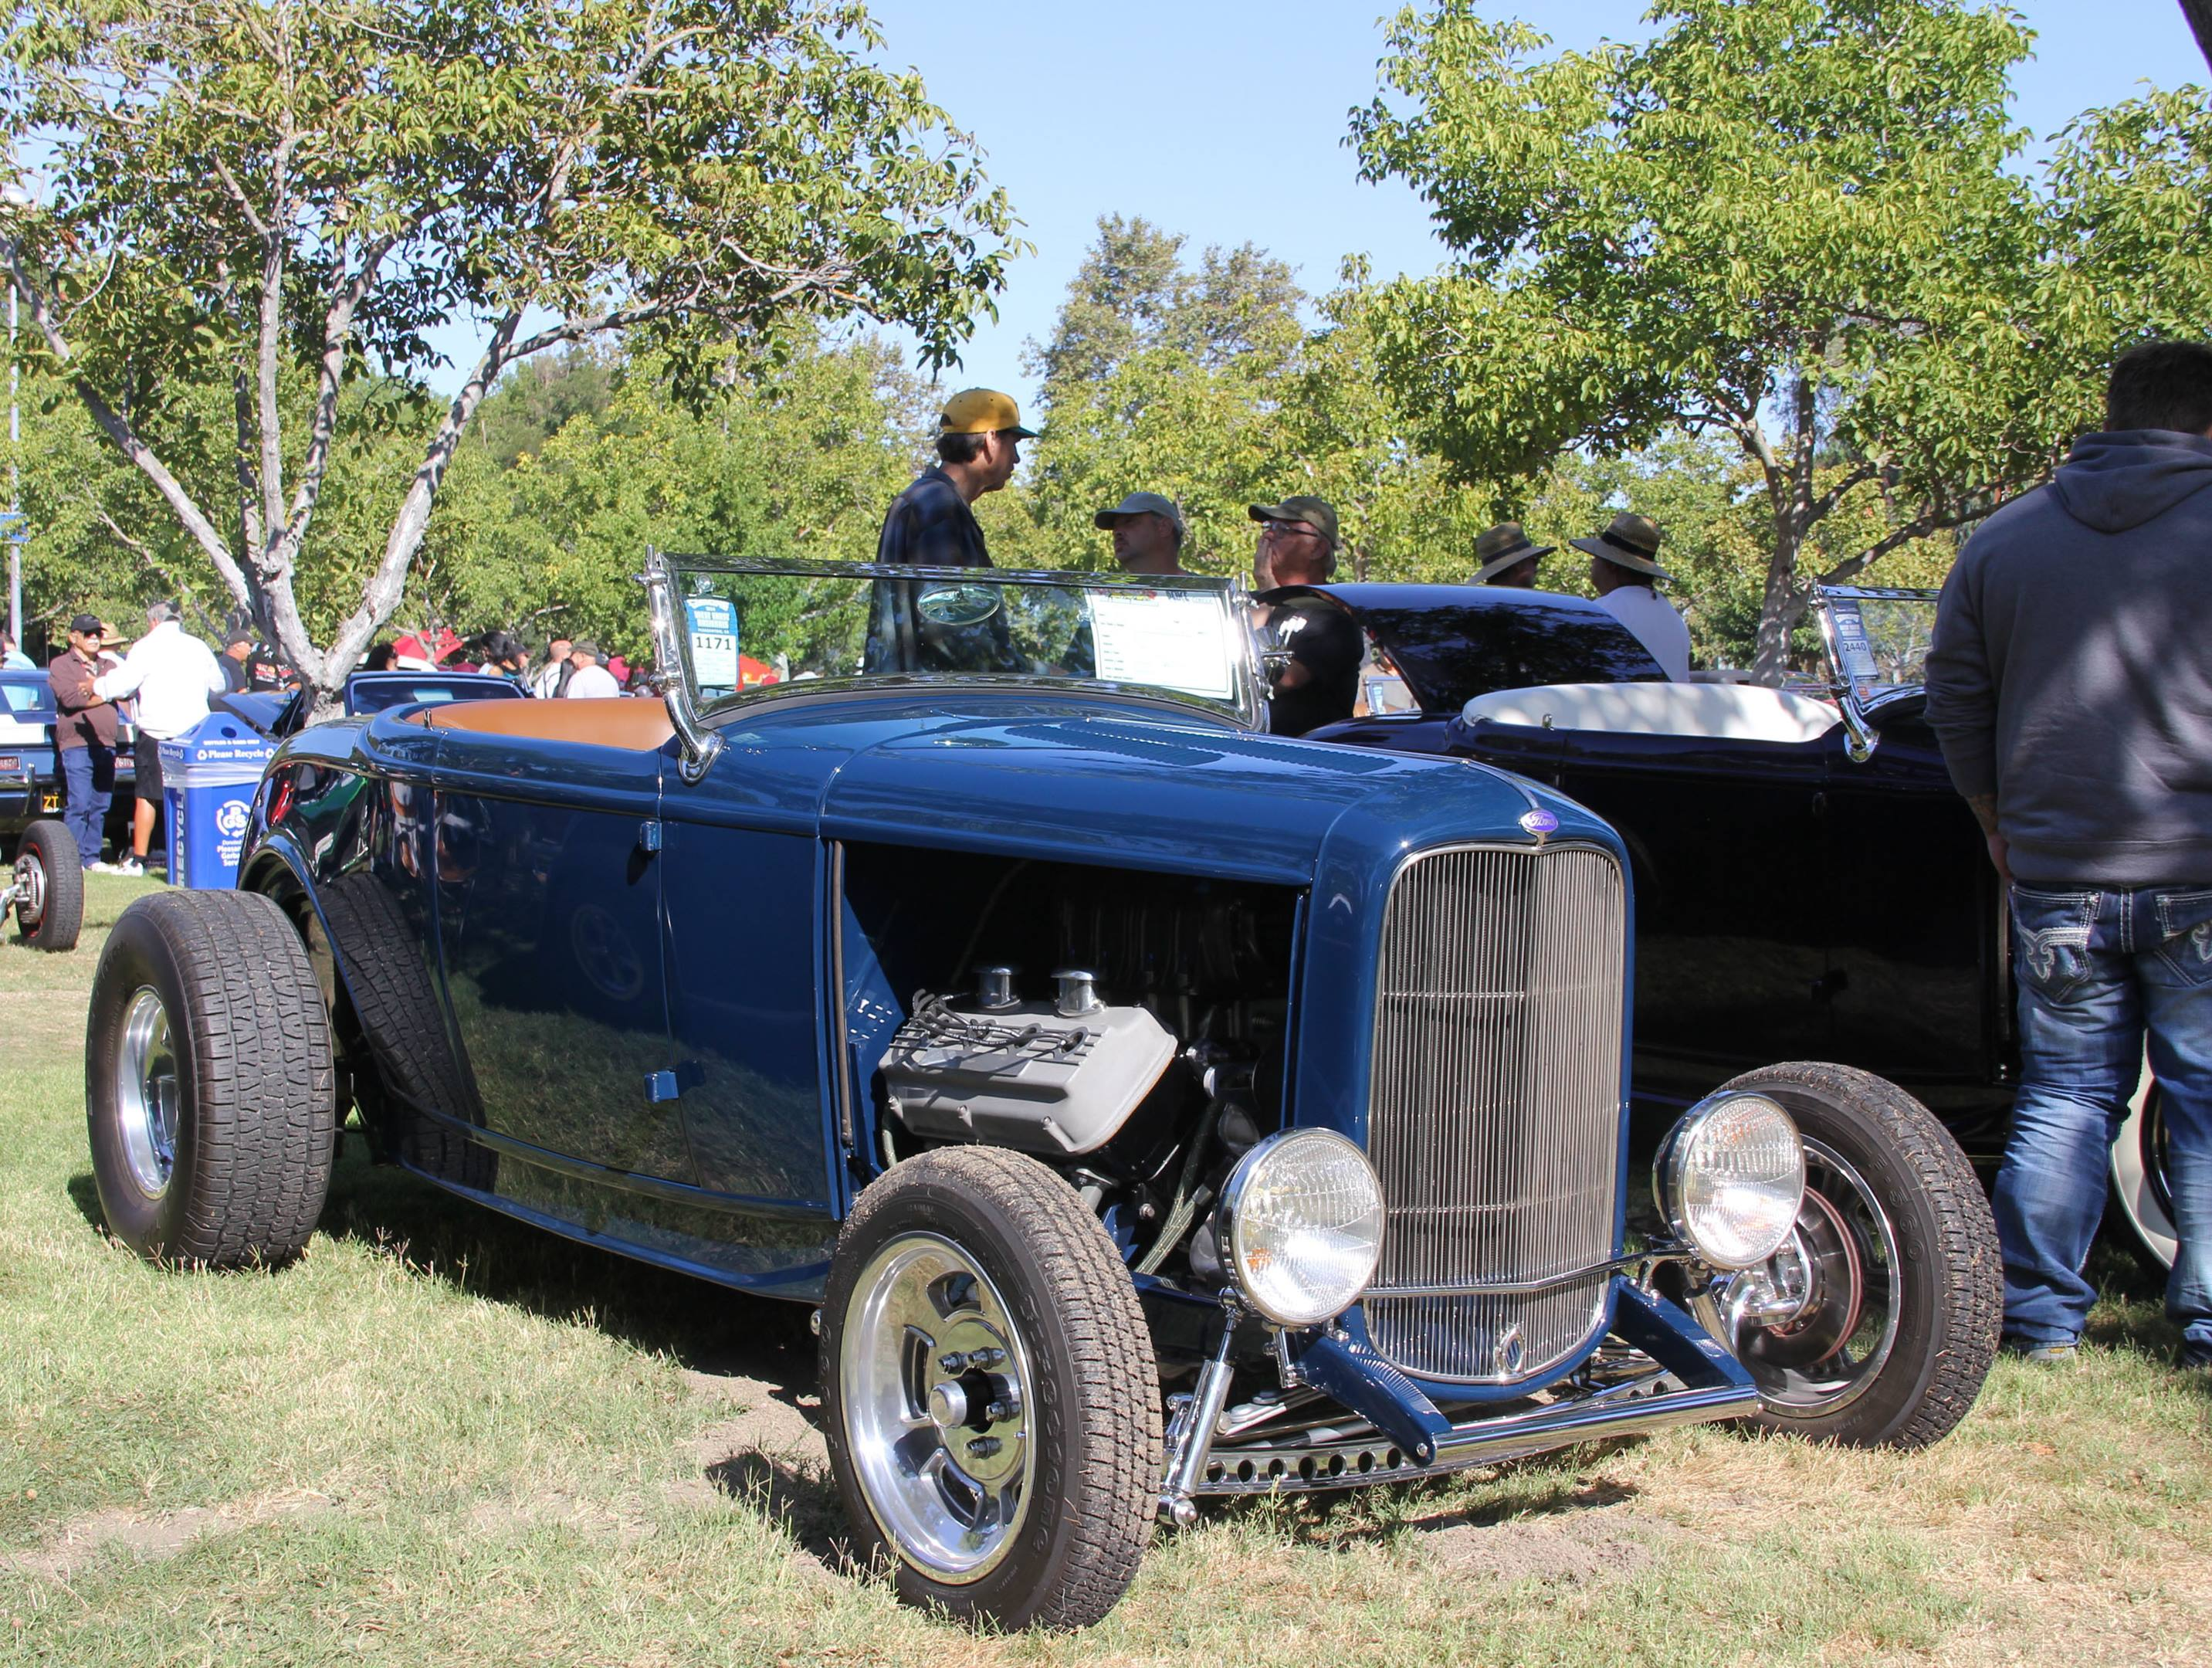 1932 Ford Deuce at a car show